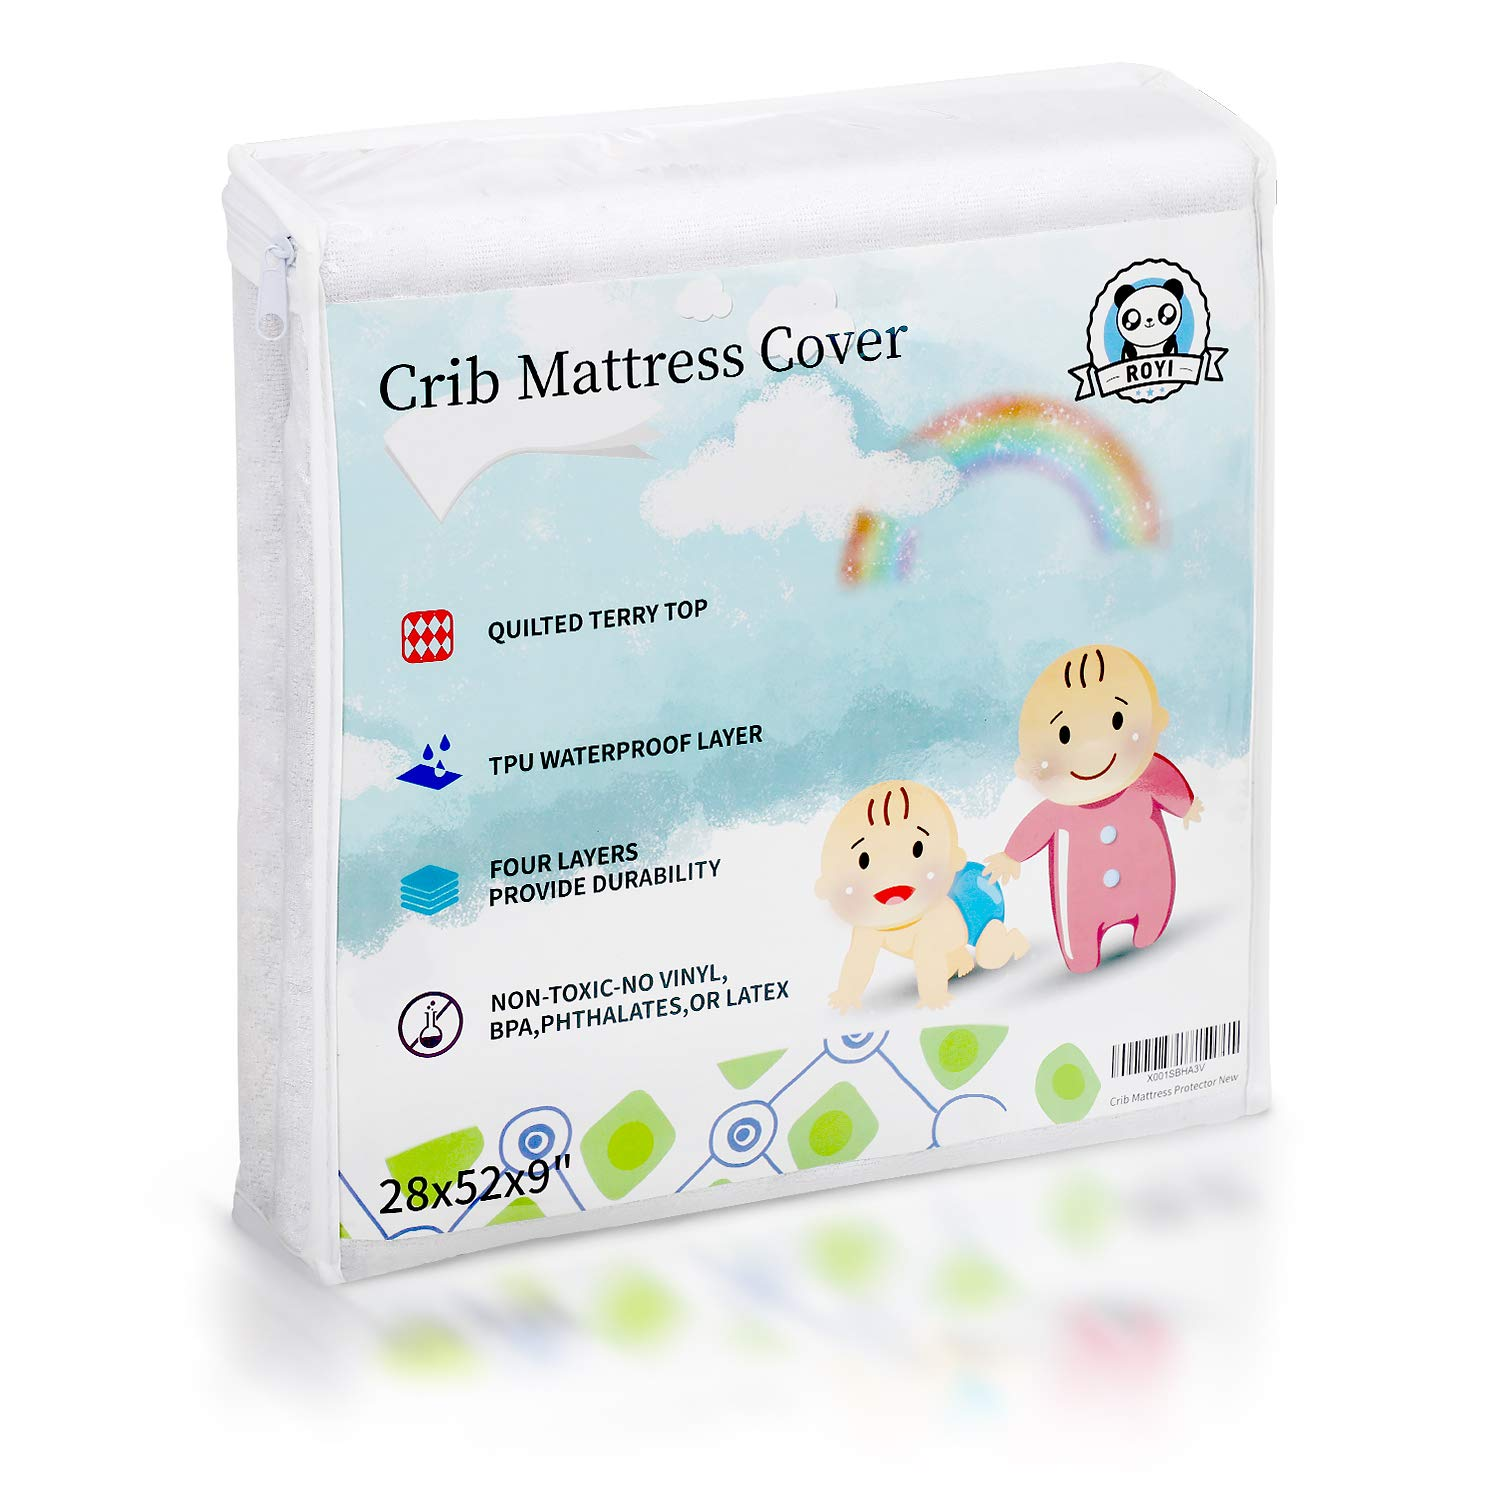 Baby Safe Crib Mattress Protector 100% Waterproof Toddler Protective Pad Cover Organic Bamboo Hypoallergenic Fits All Standard Crib tomser